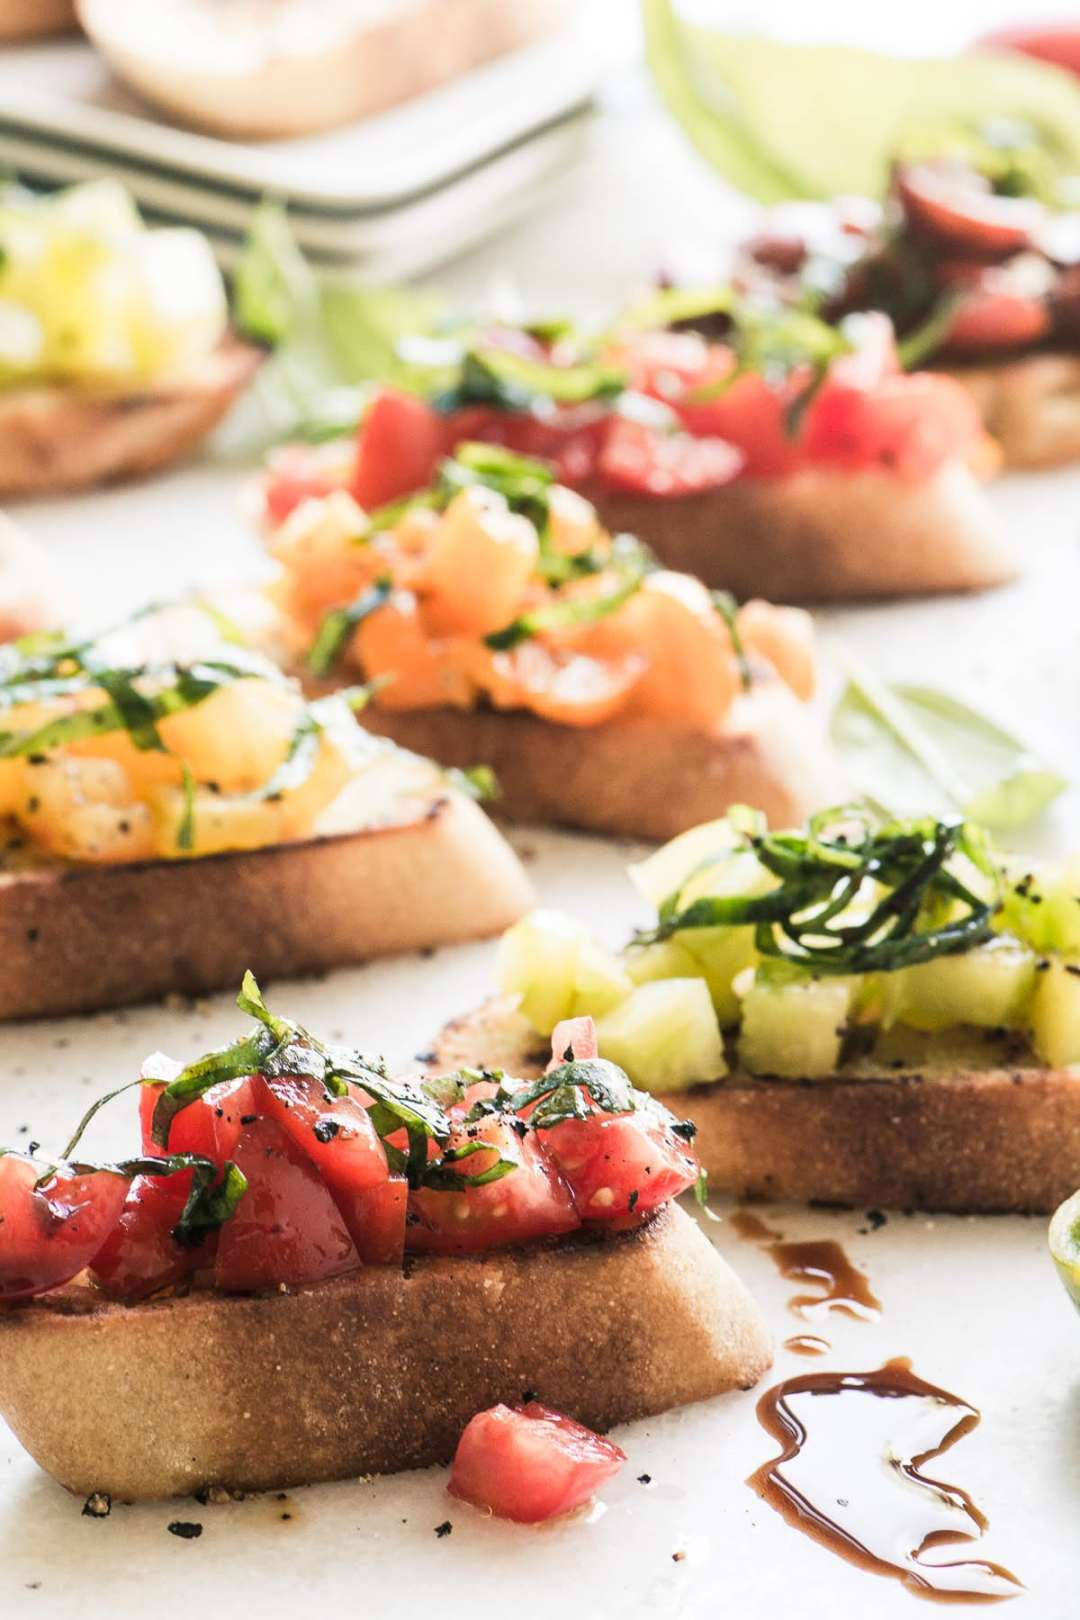 Colorful Heirloom Tomato Bruschetta on a white surface